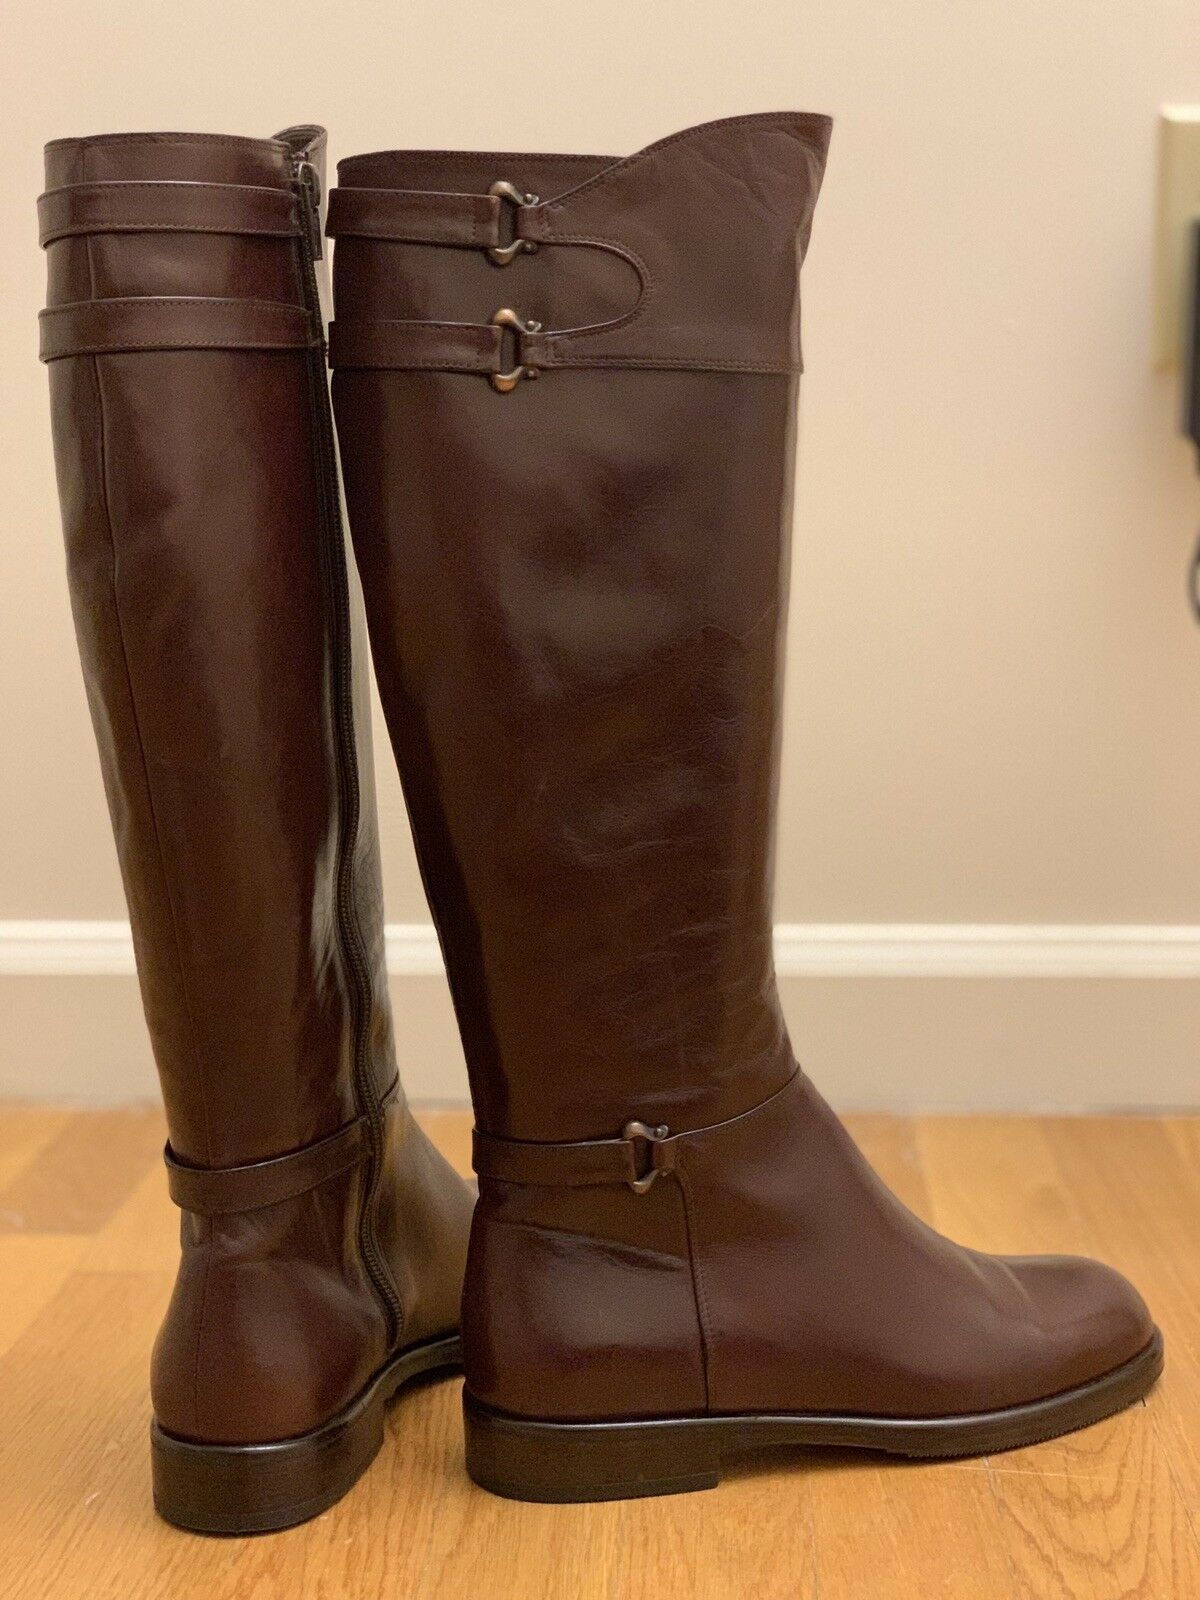 Bally Vintage Brown Italian Leather Boots - Size US 6.5 EU 37